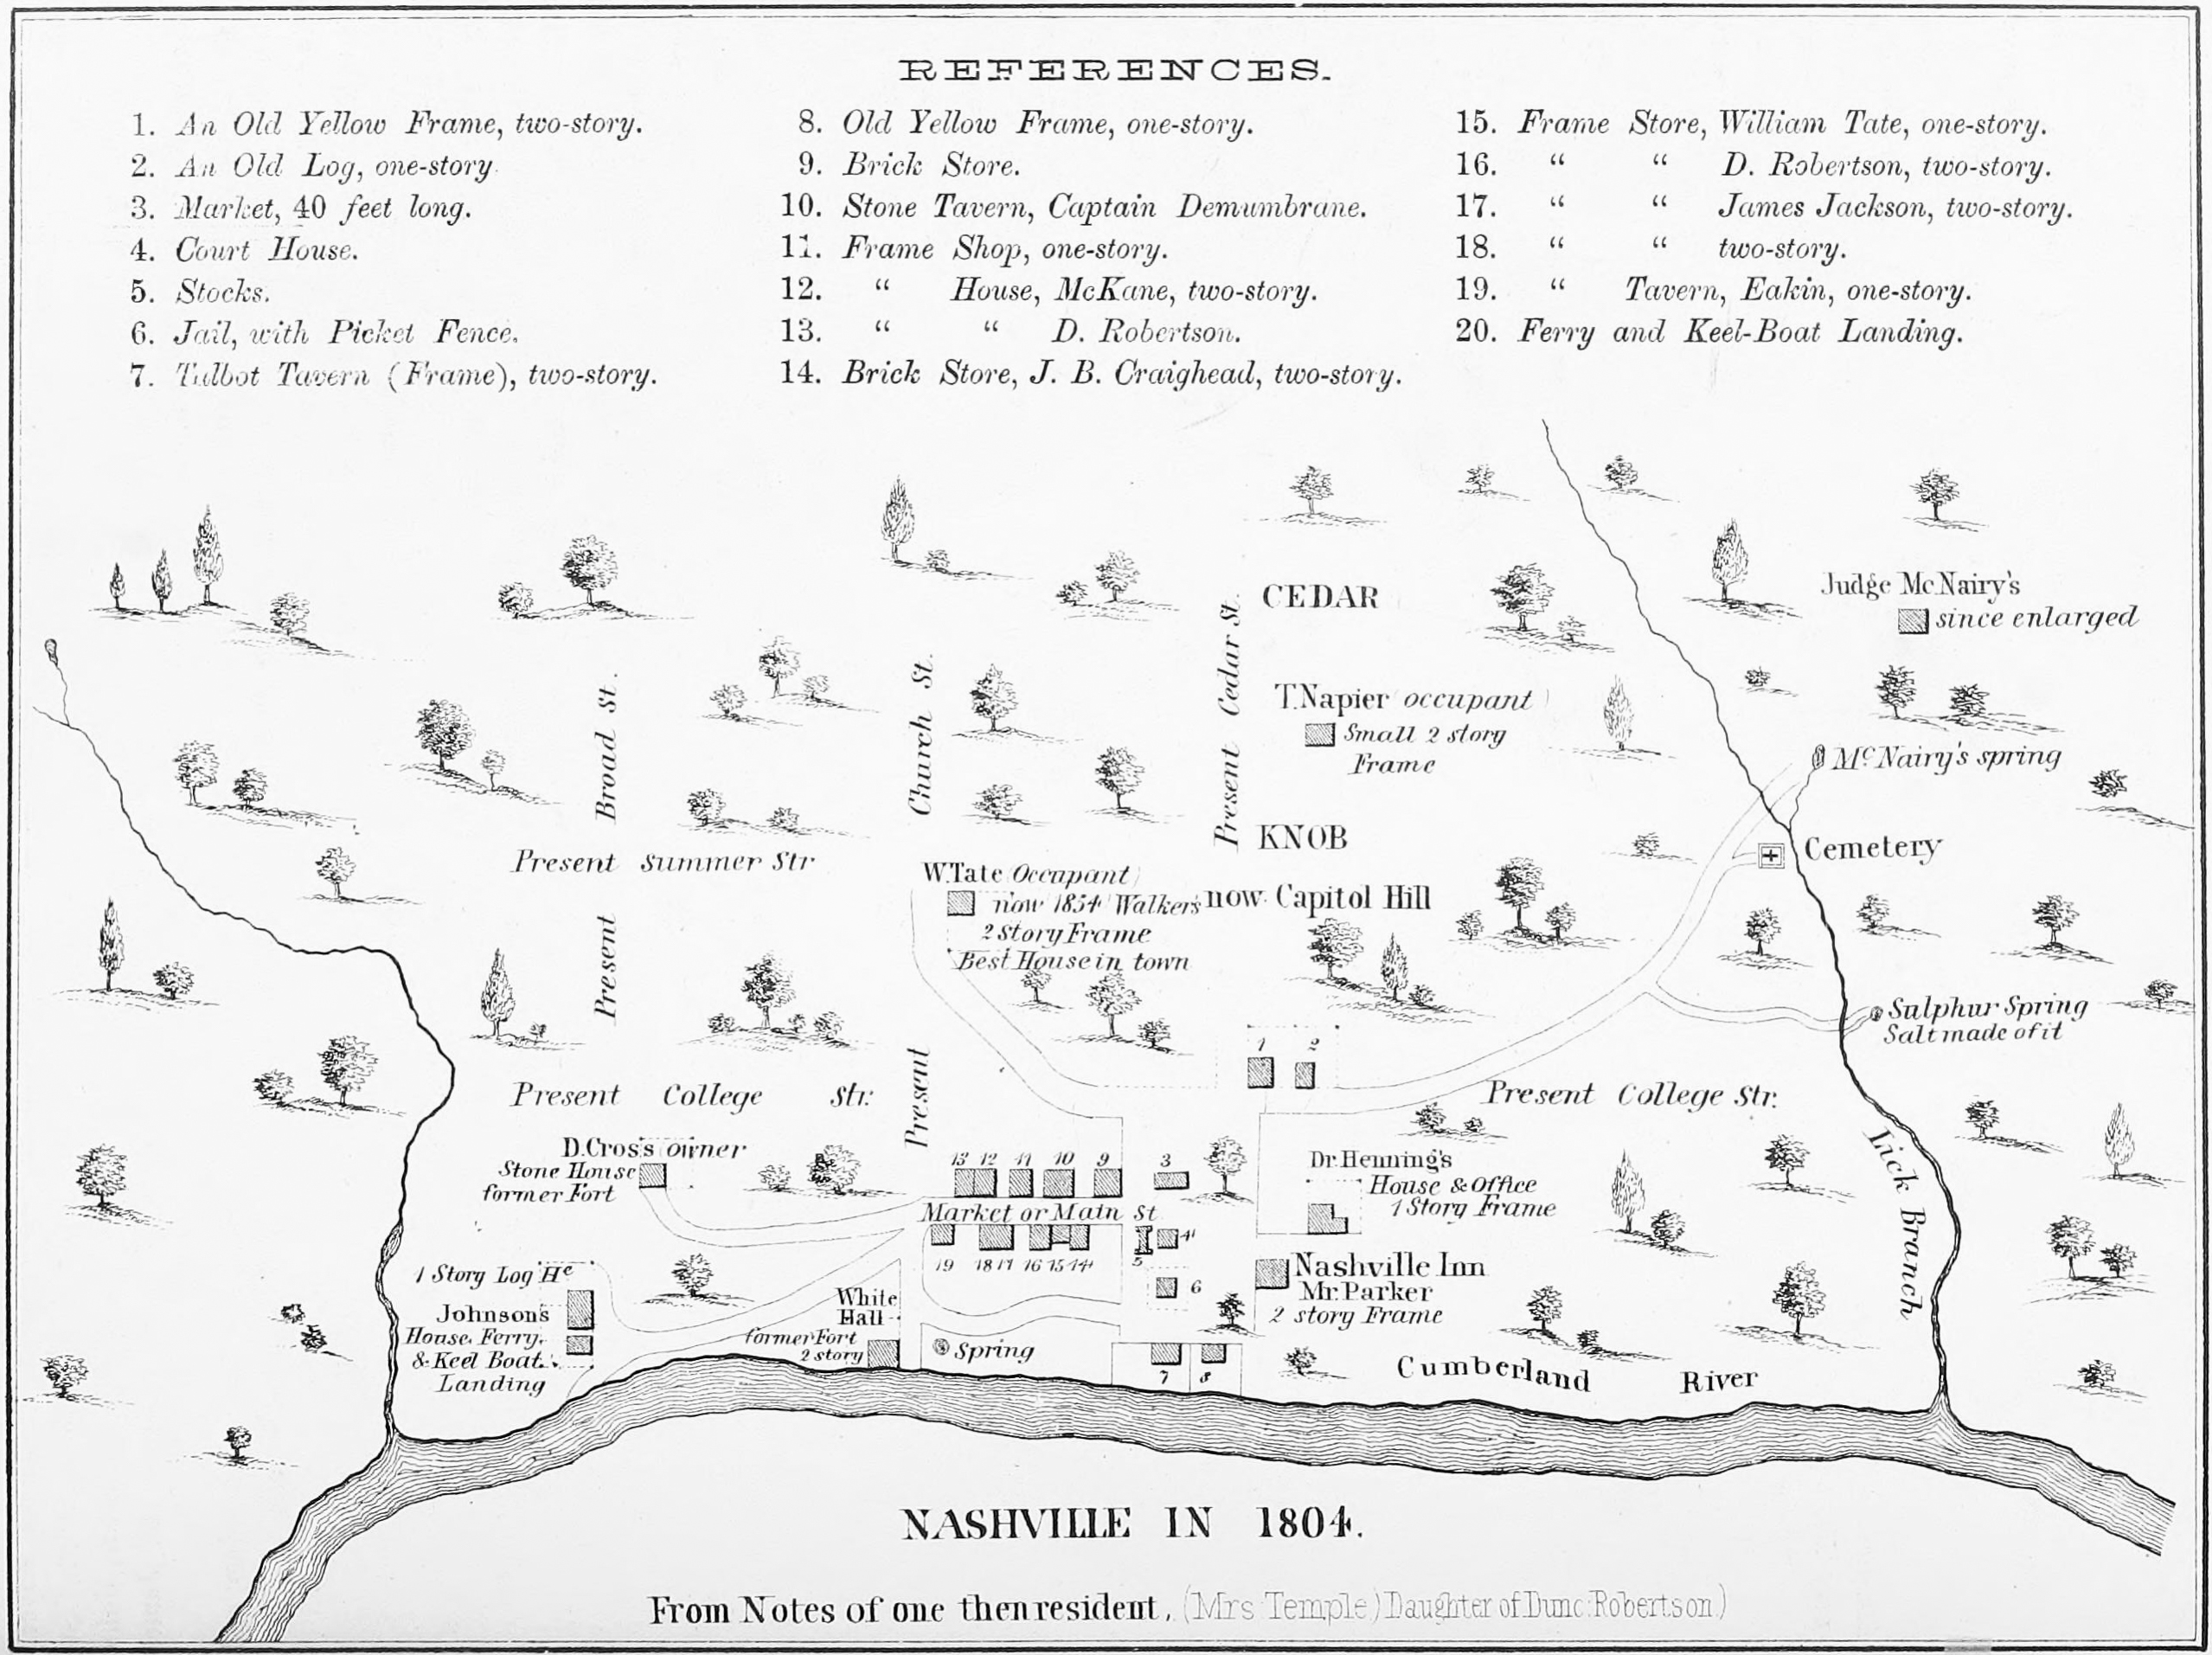 A Map of Nashville in 1804